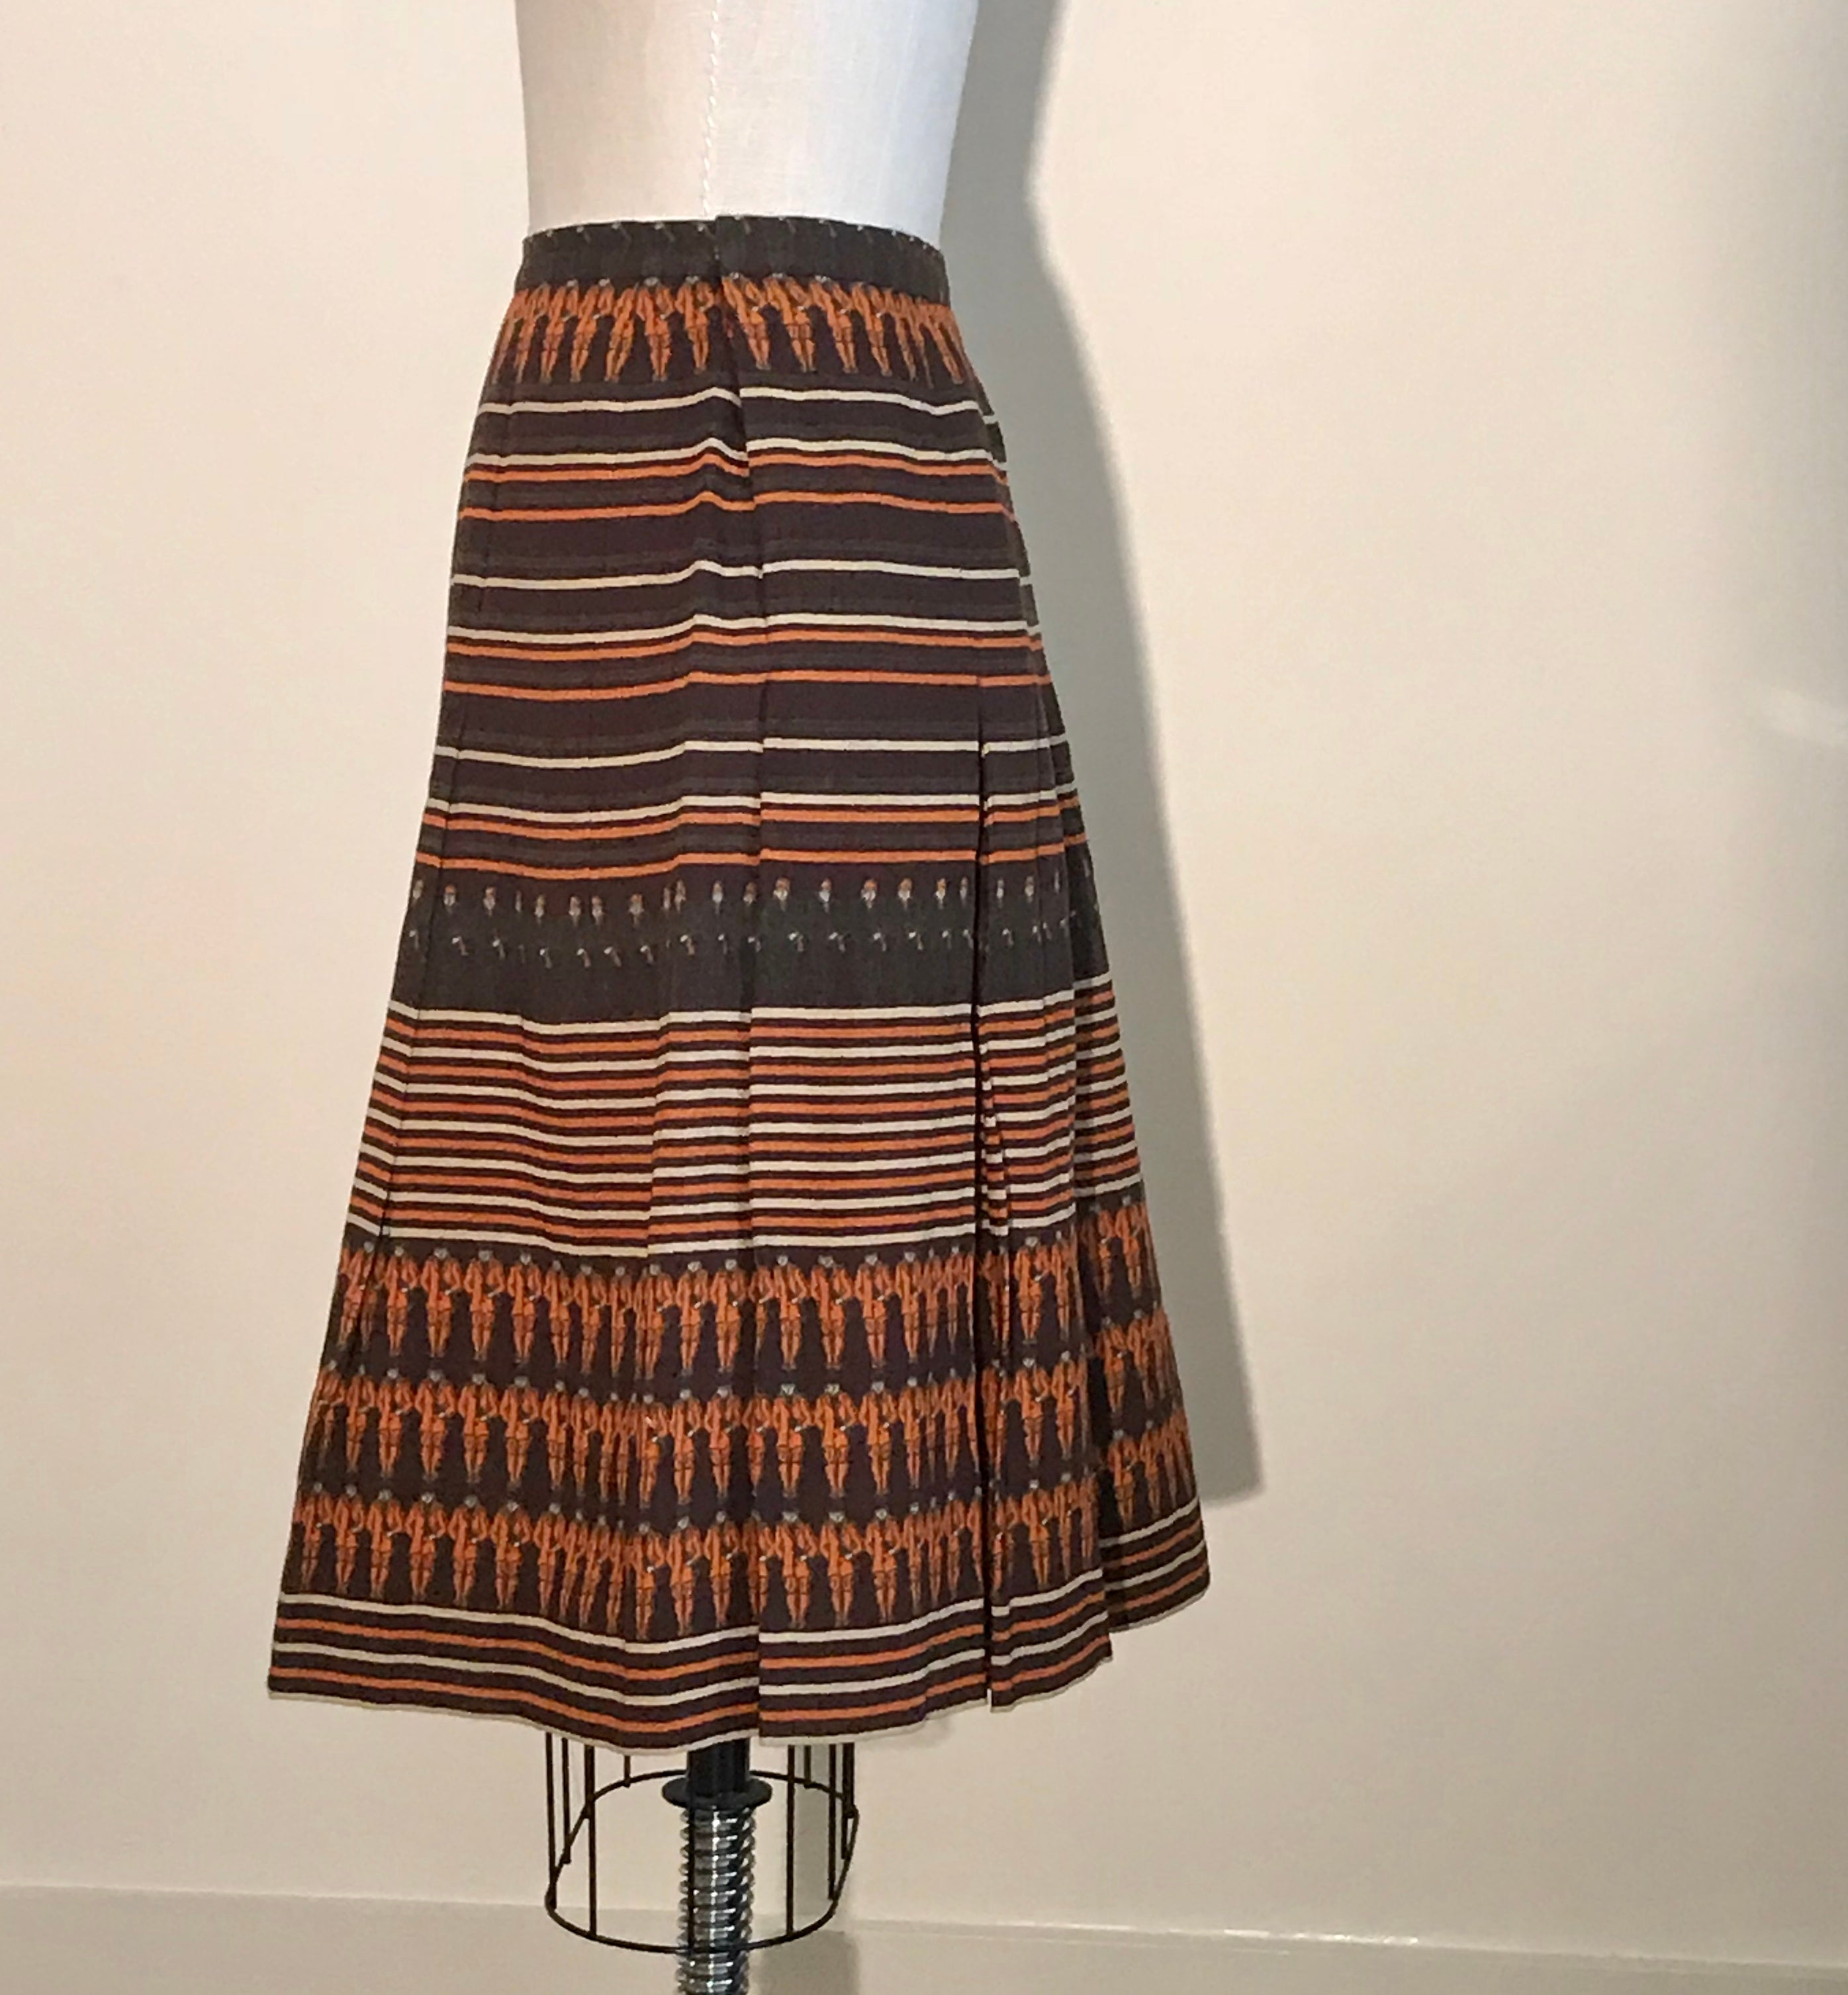 ca296a07d Gucci Vintage Equestrian Rider Brown Orange Cream Stripe Print Pleat Skirt,  1970 For Sale at 1stdibs